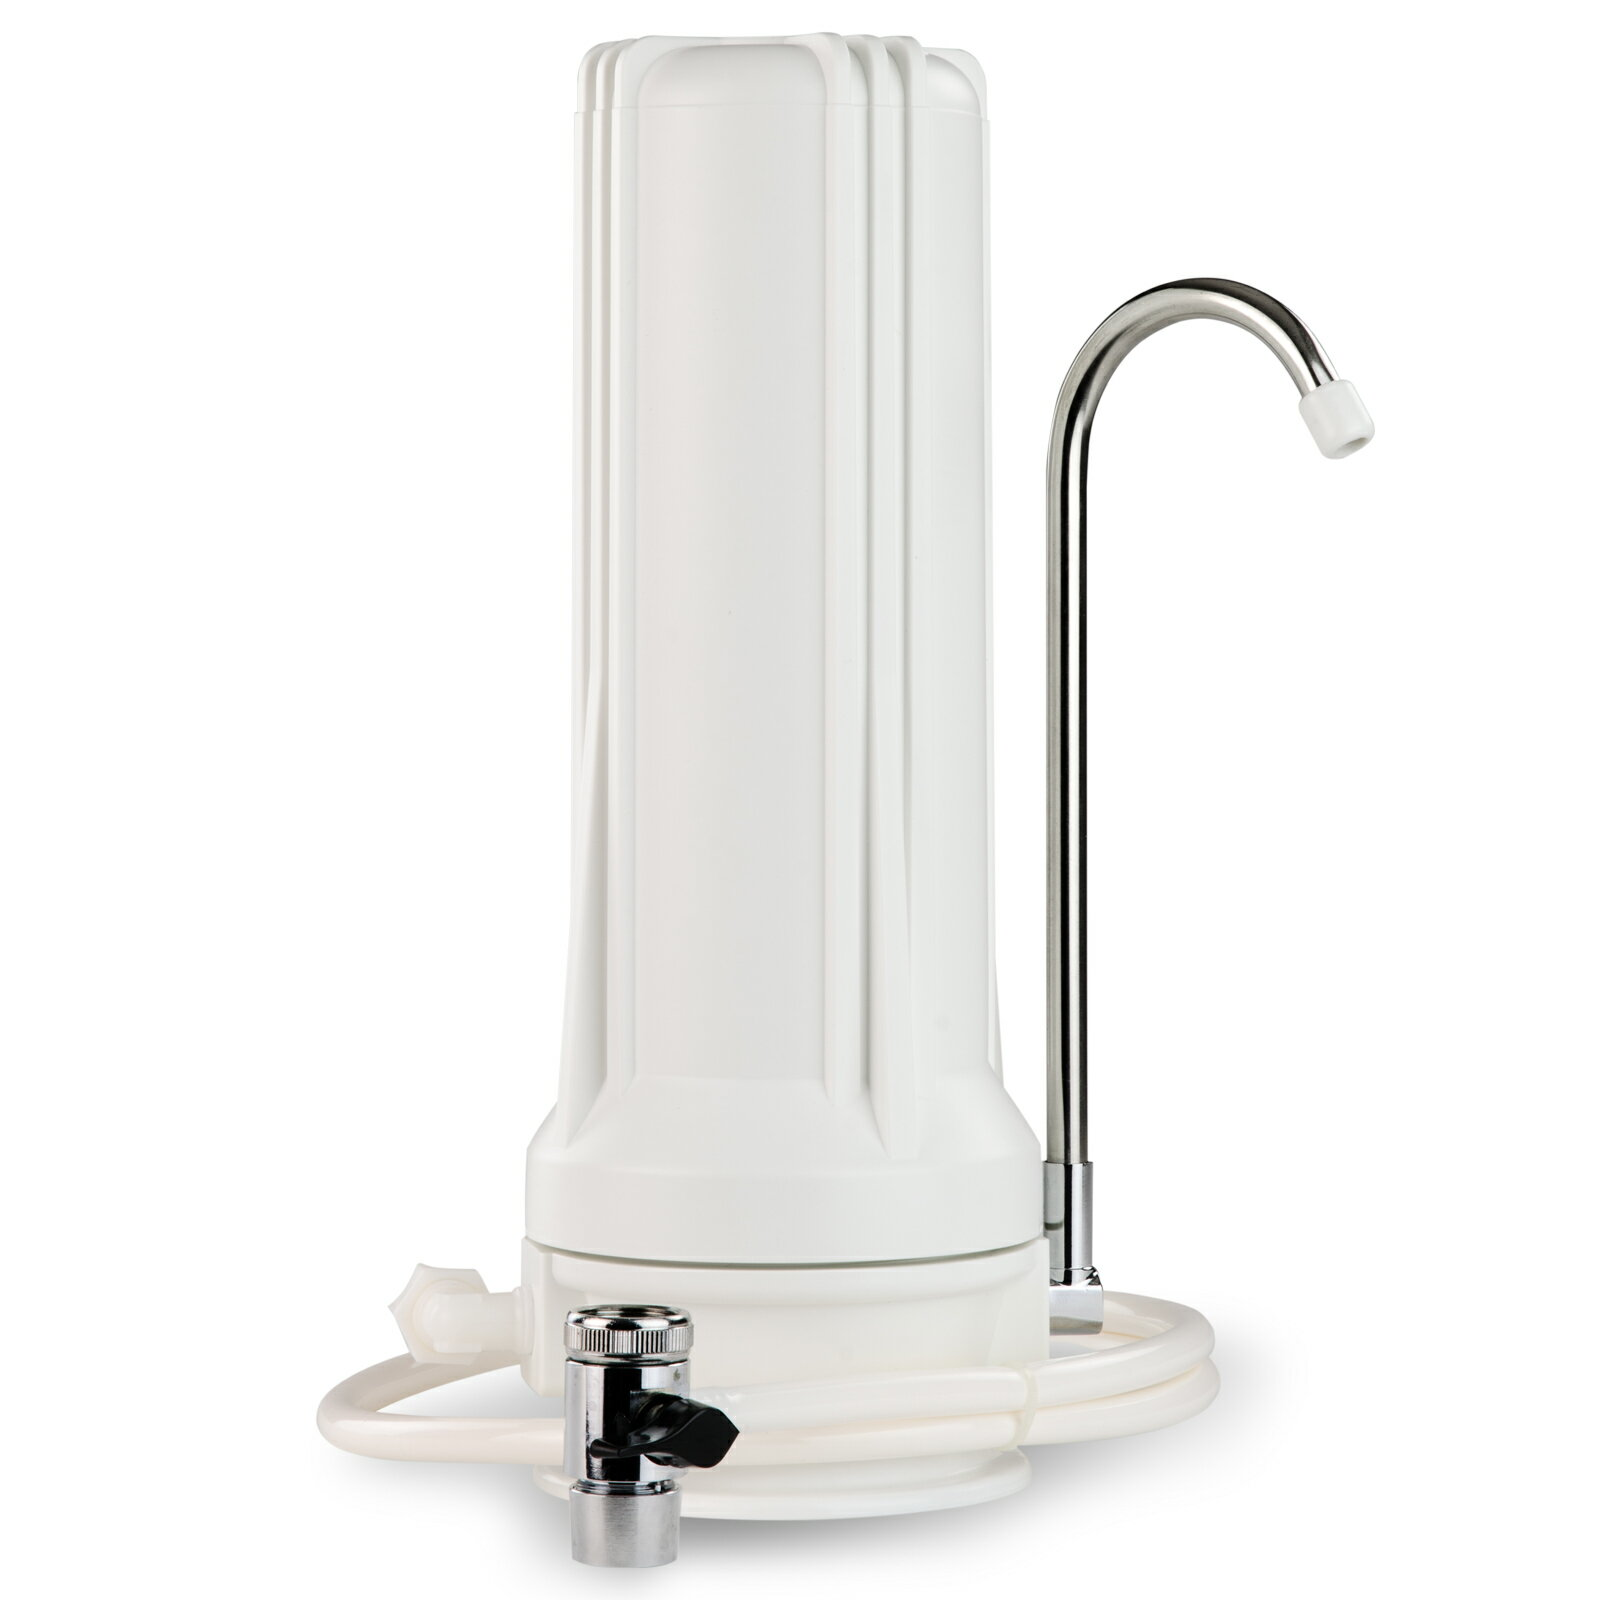 Ispring Water Systems Ispring Ckc1 New Wav New Wave